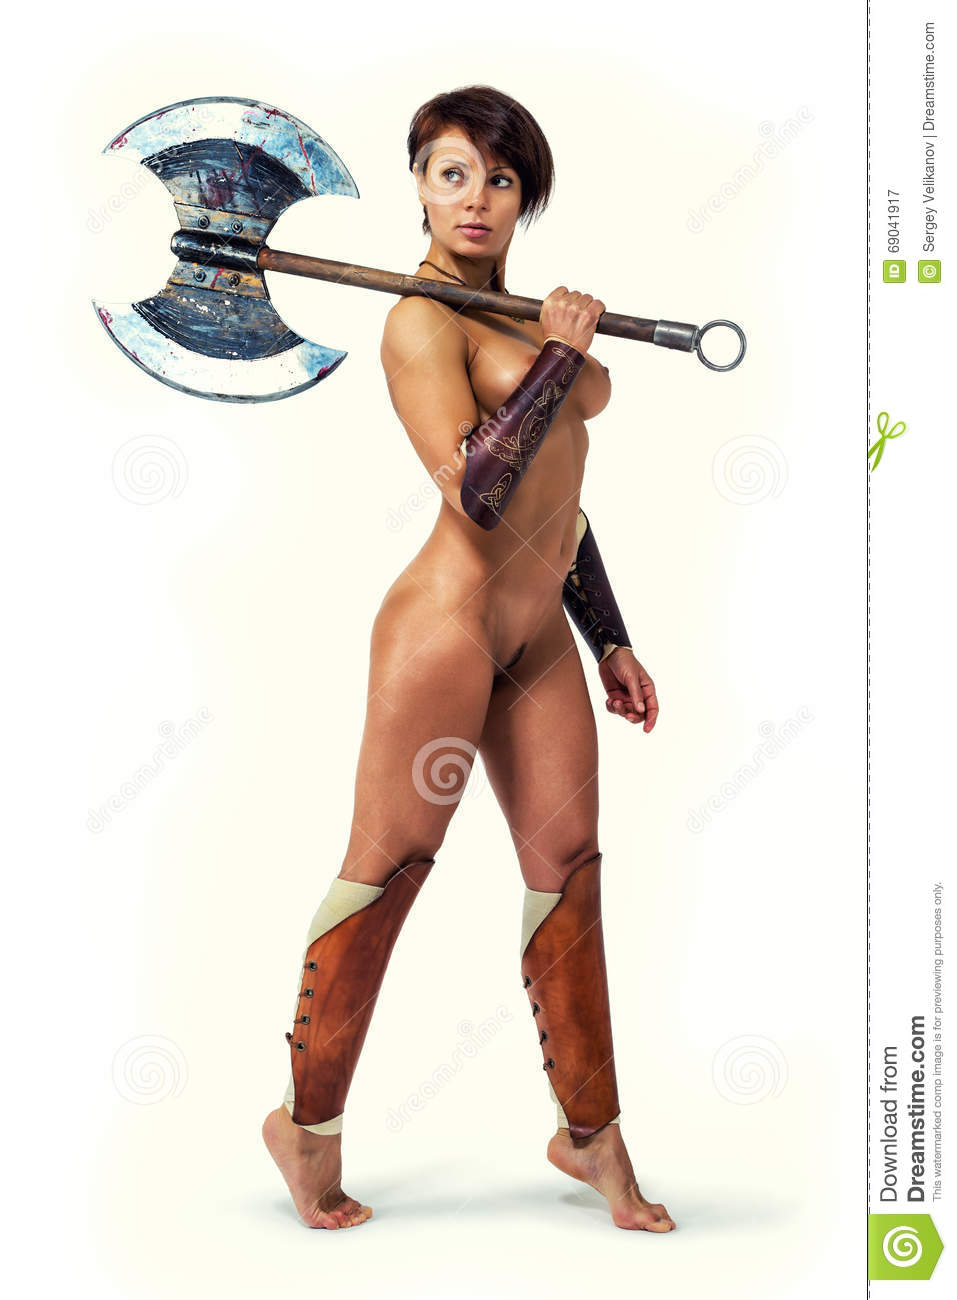 nude warrior - woman with an axe. stock image - image of bronze